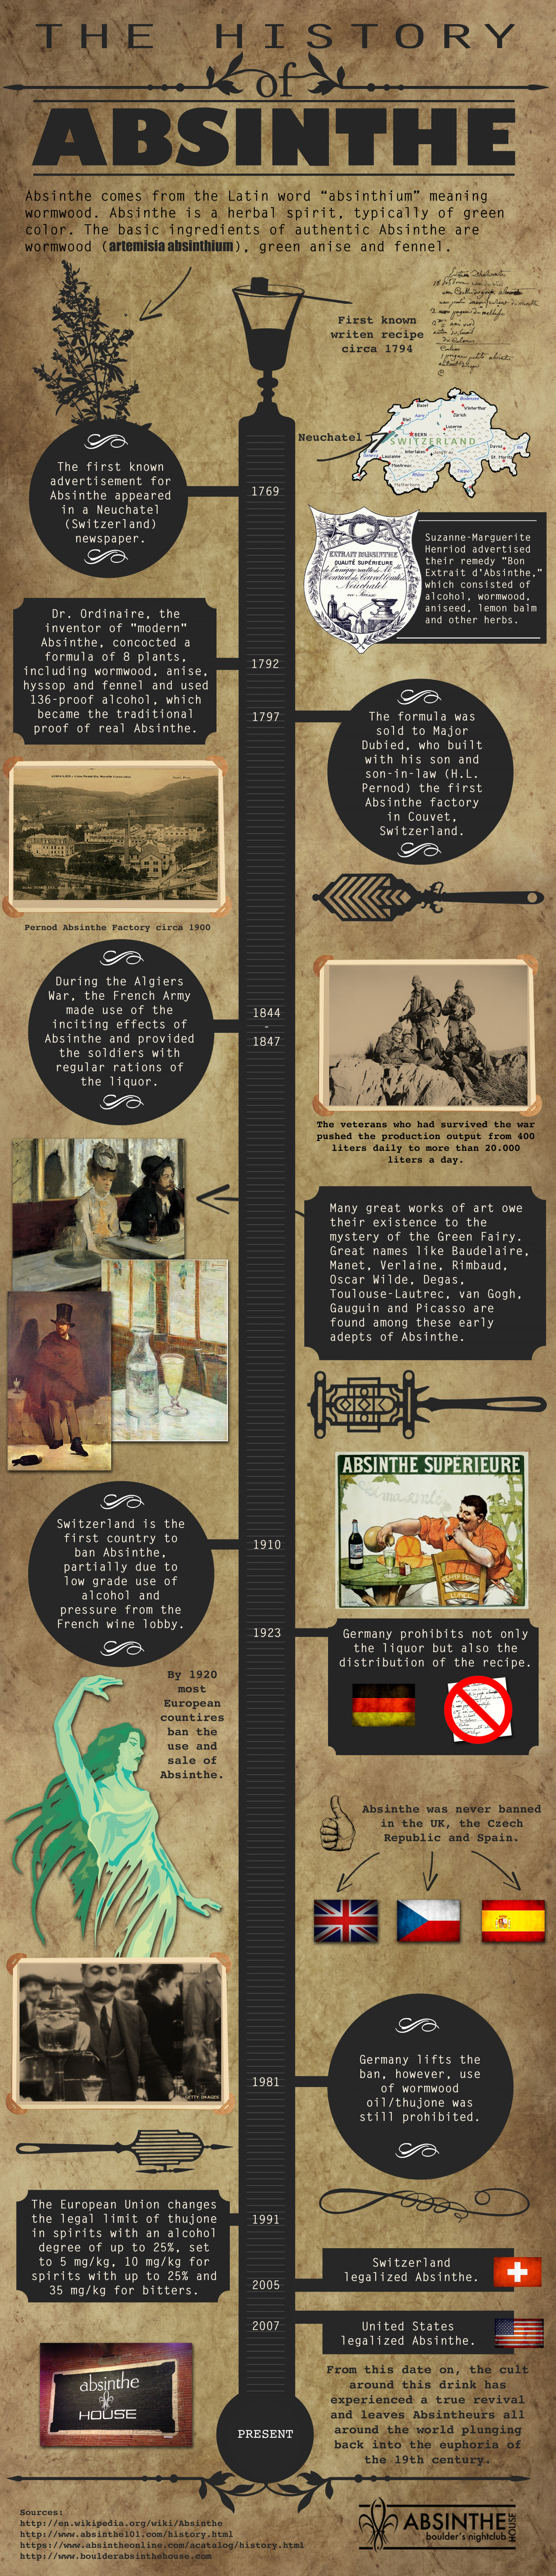 The History of Absinthe Infographic